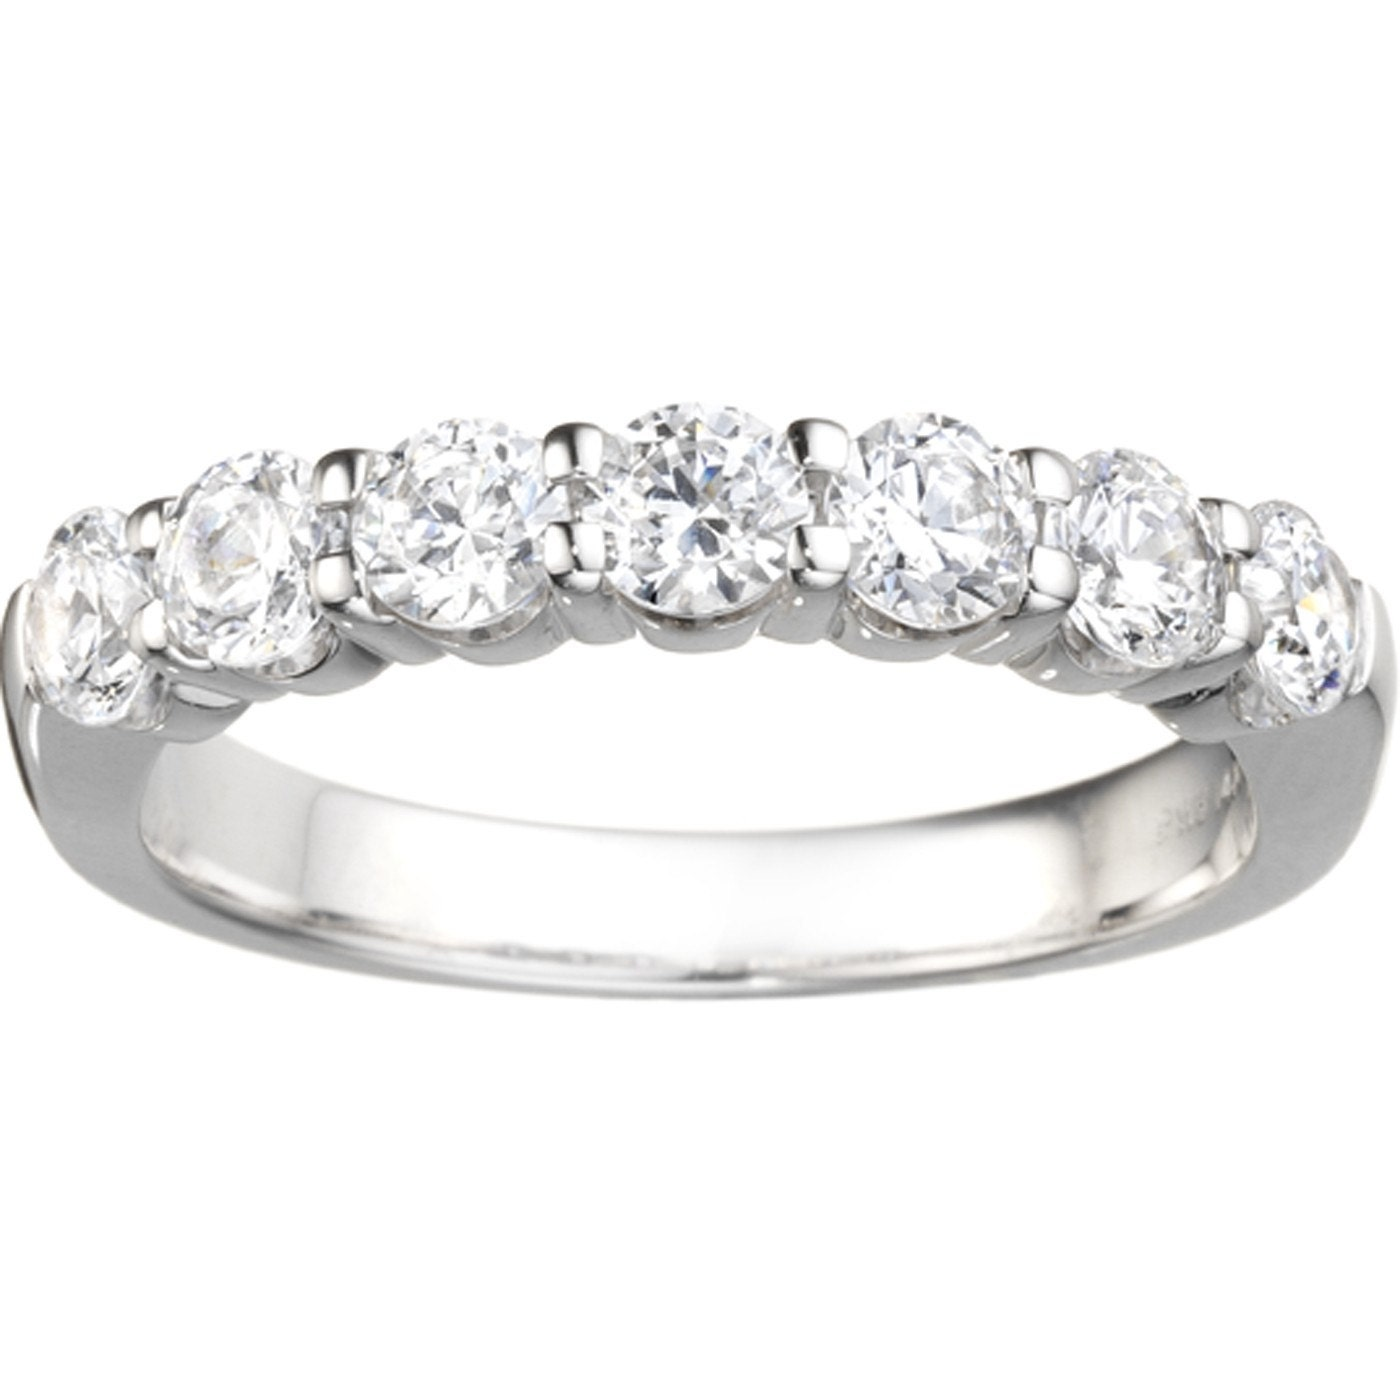 Classic 7 Stone Band 42ct d Prong Cubic Zirconia Set in